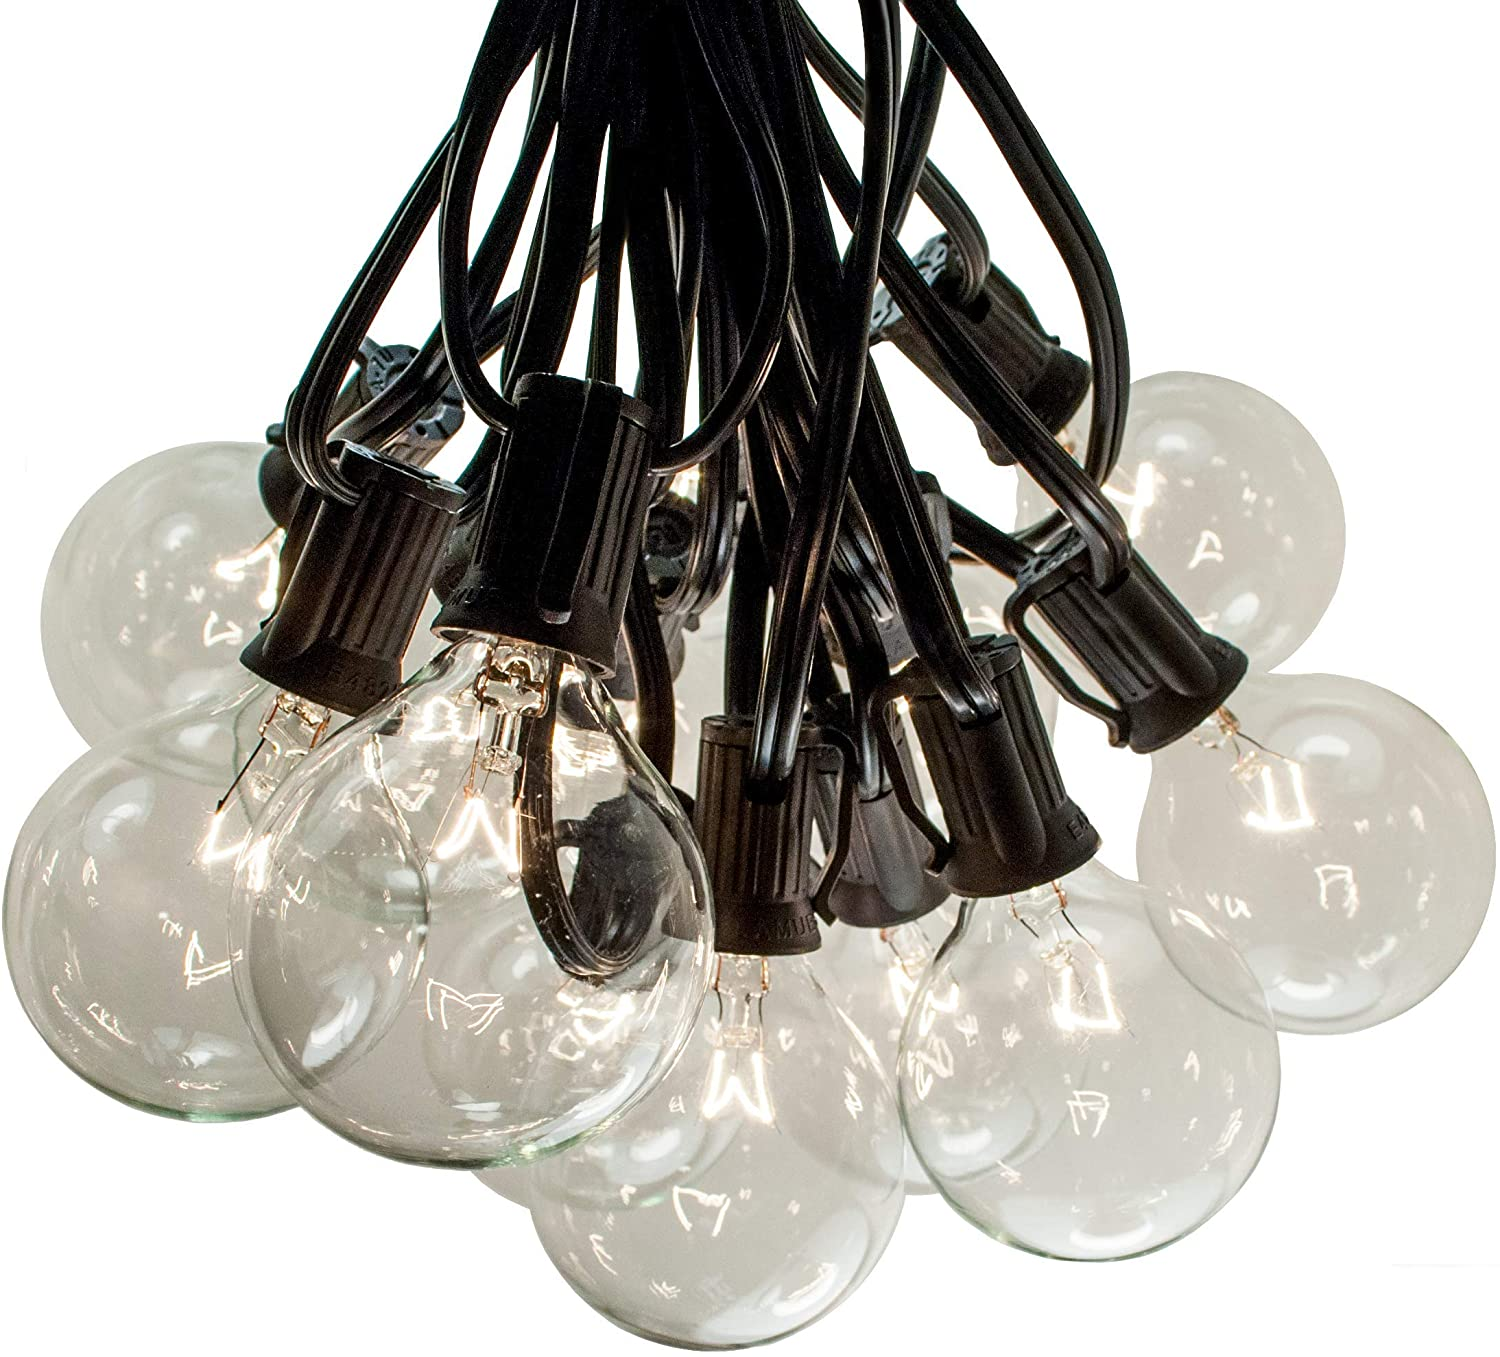 50 Foot Outdoor String Lights - Black Wire - 50 G50 Clear 2 Inch Globe Bulbs (+ 2 Free Spares) for Cafe Bistro Market Deck Porch and Party Lighting